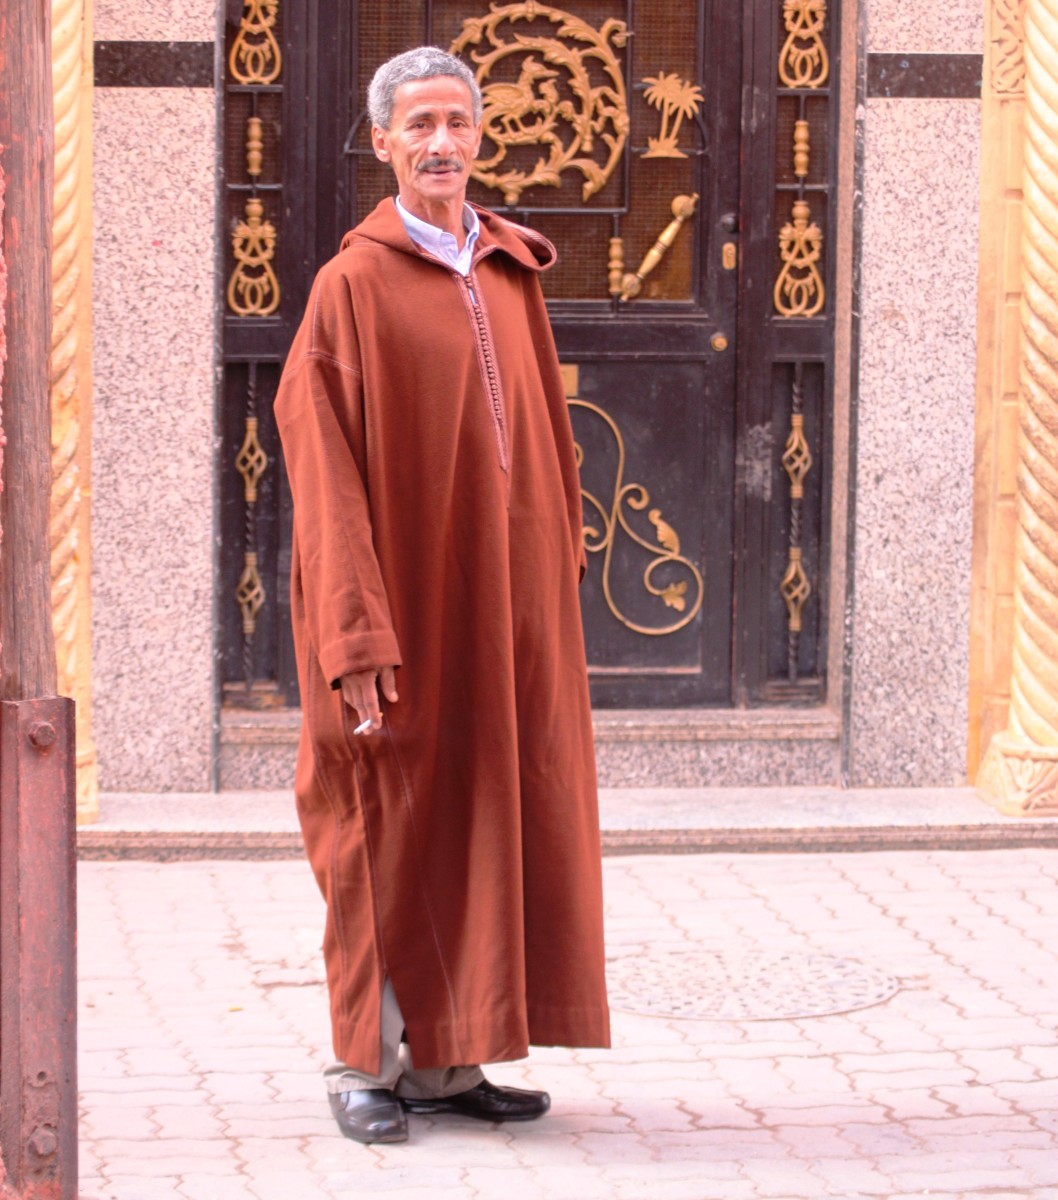 Marrakech Safety And Avoiding Faux Guide Tourist Scams